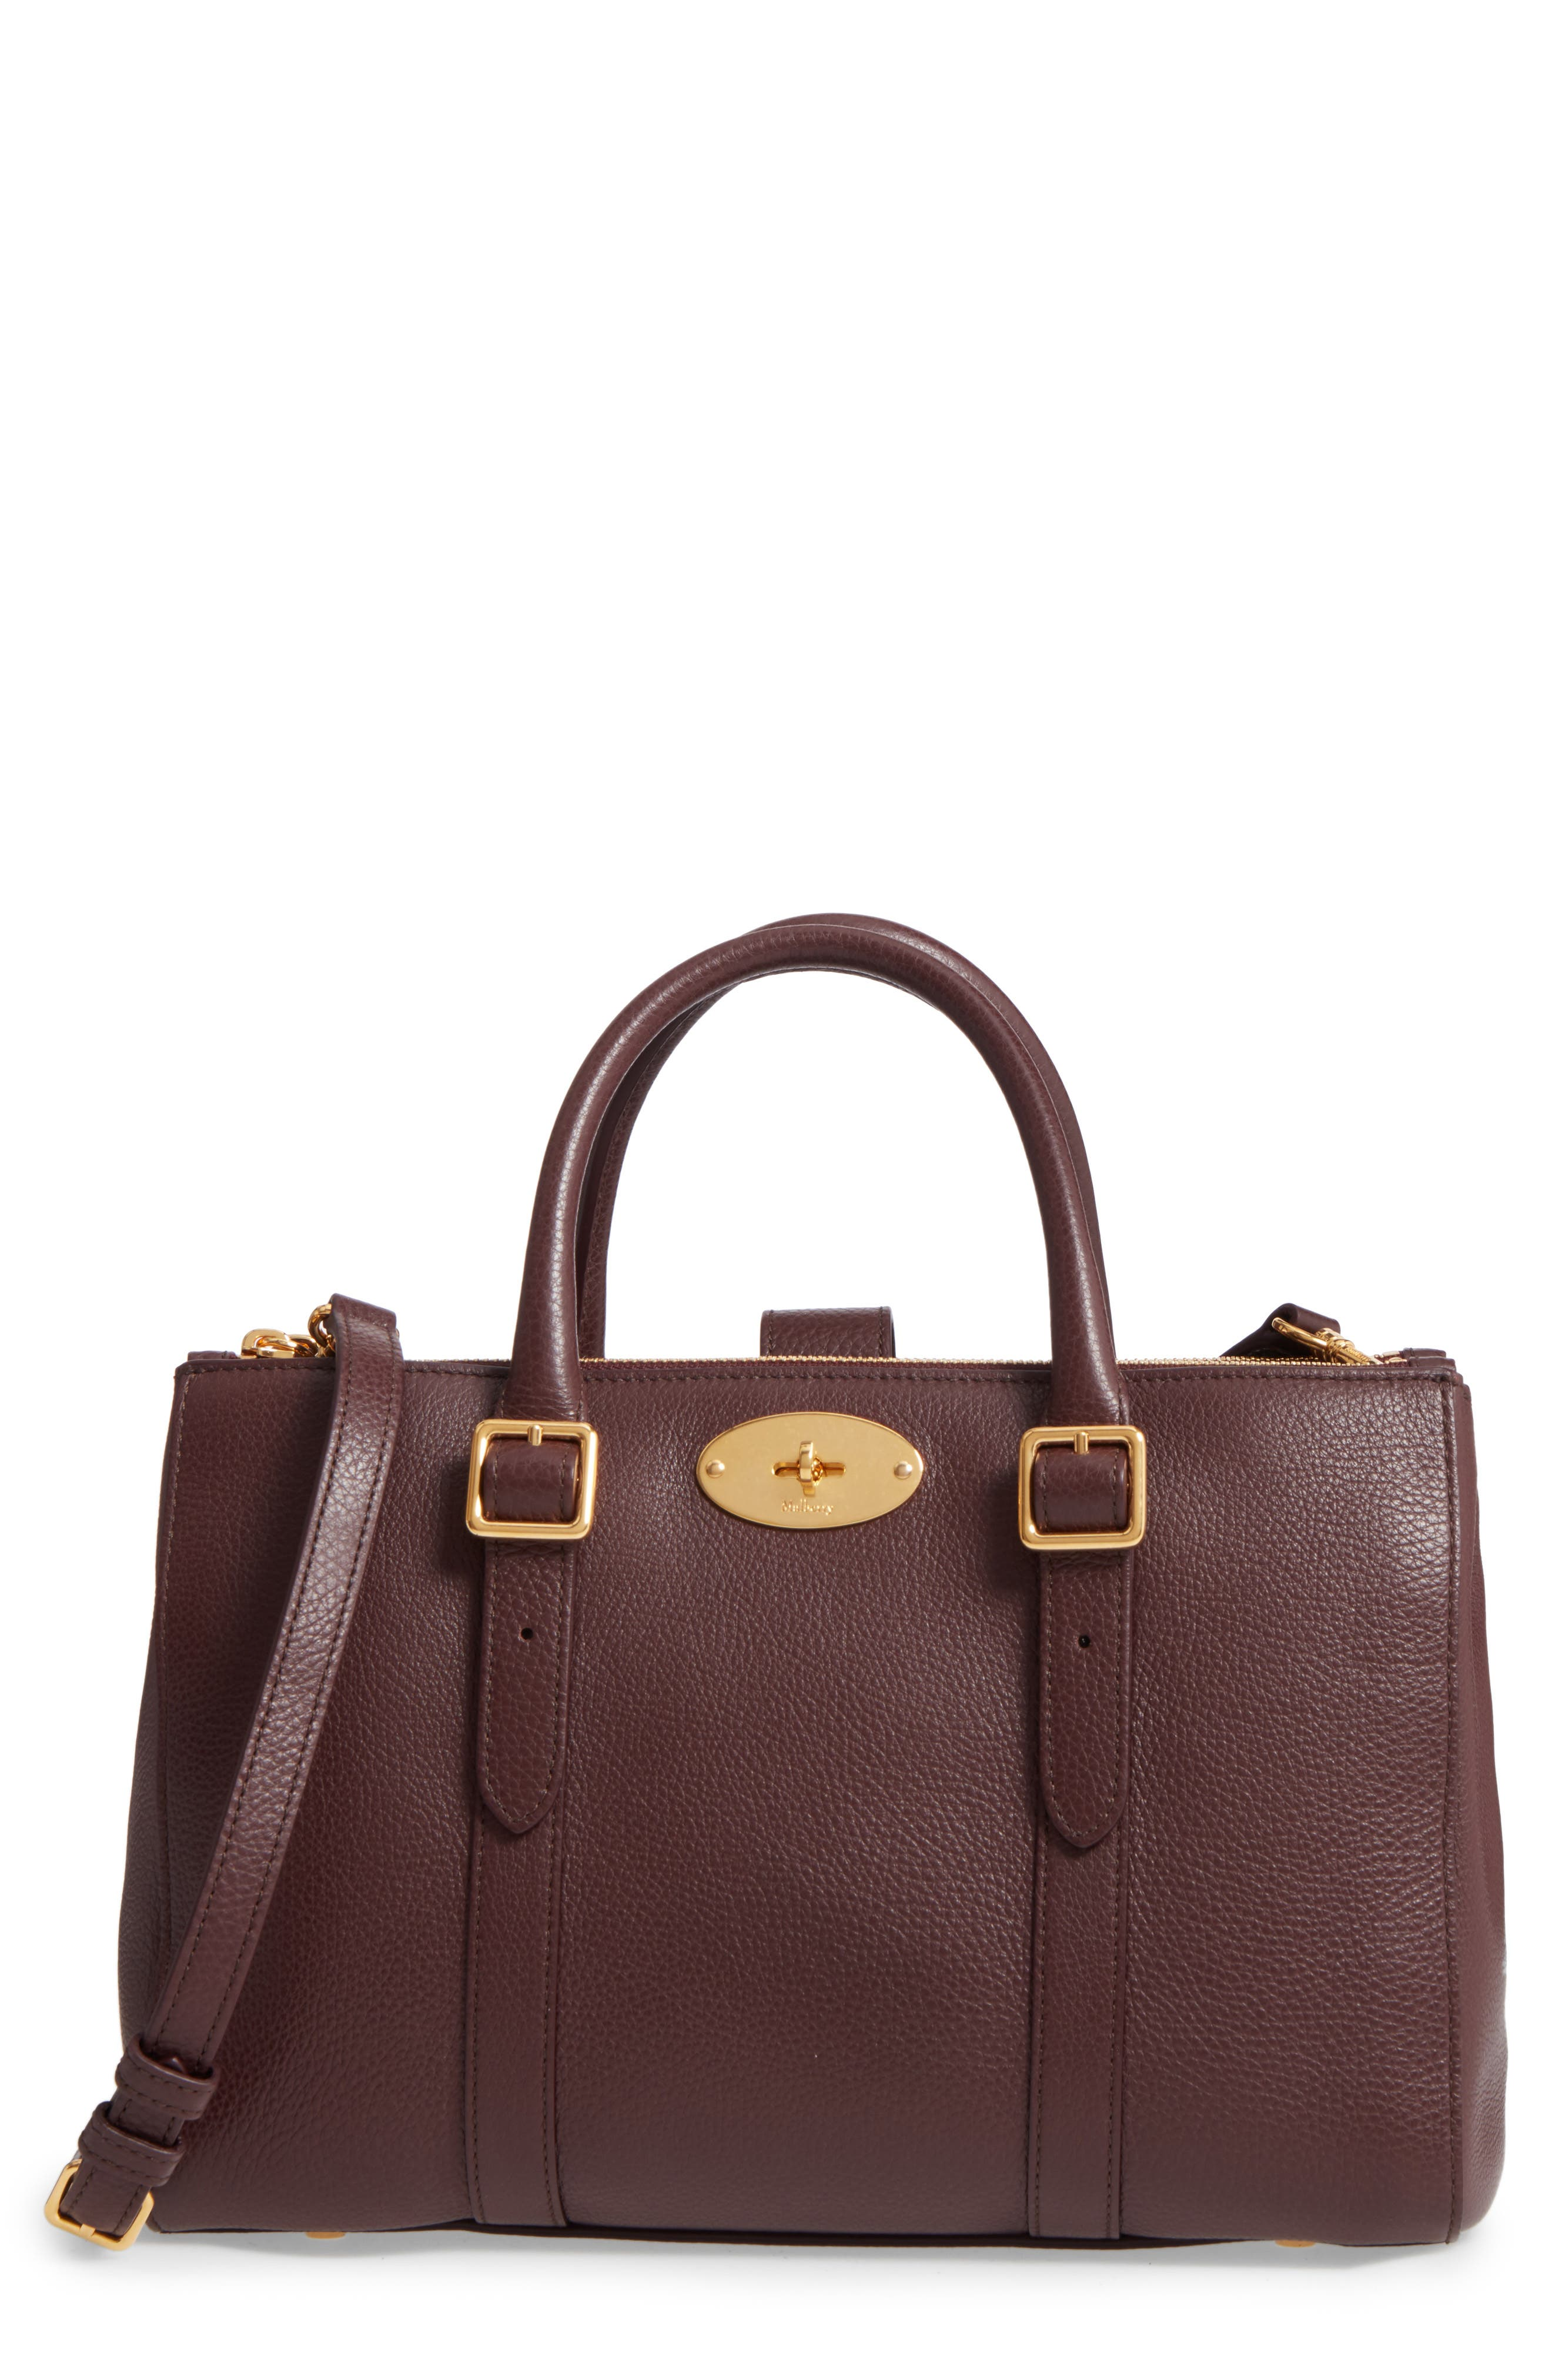 Main Image - Mulberry Small Bayswater Double Zip Leather Satchel